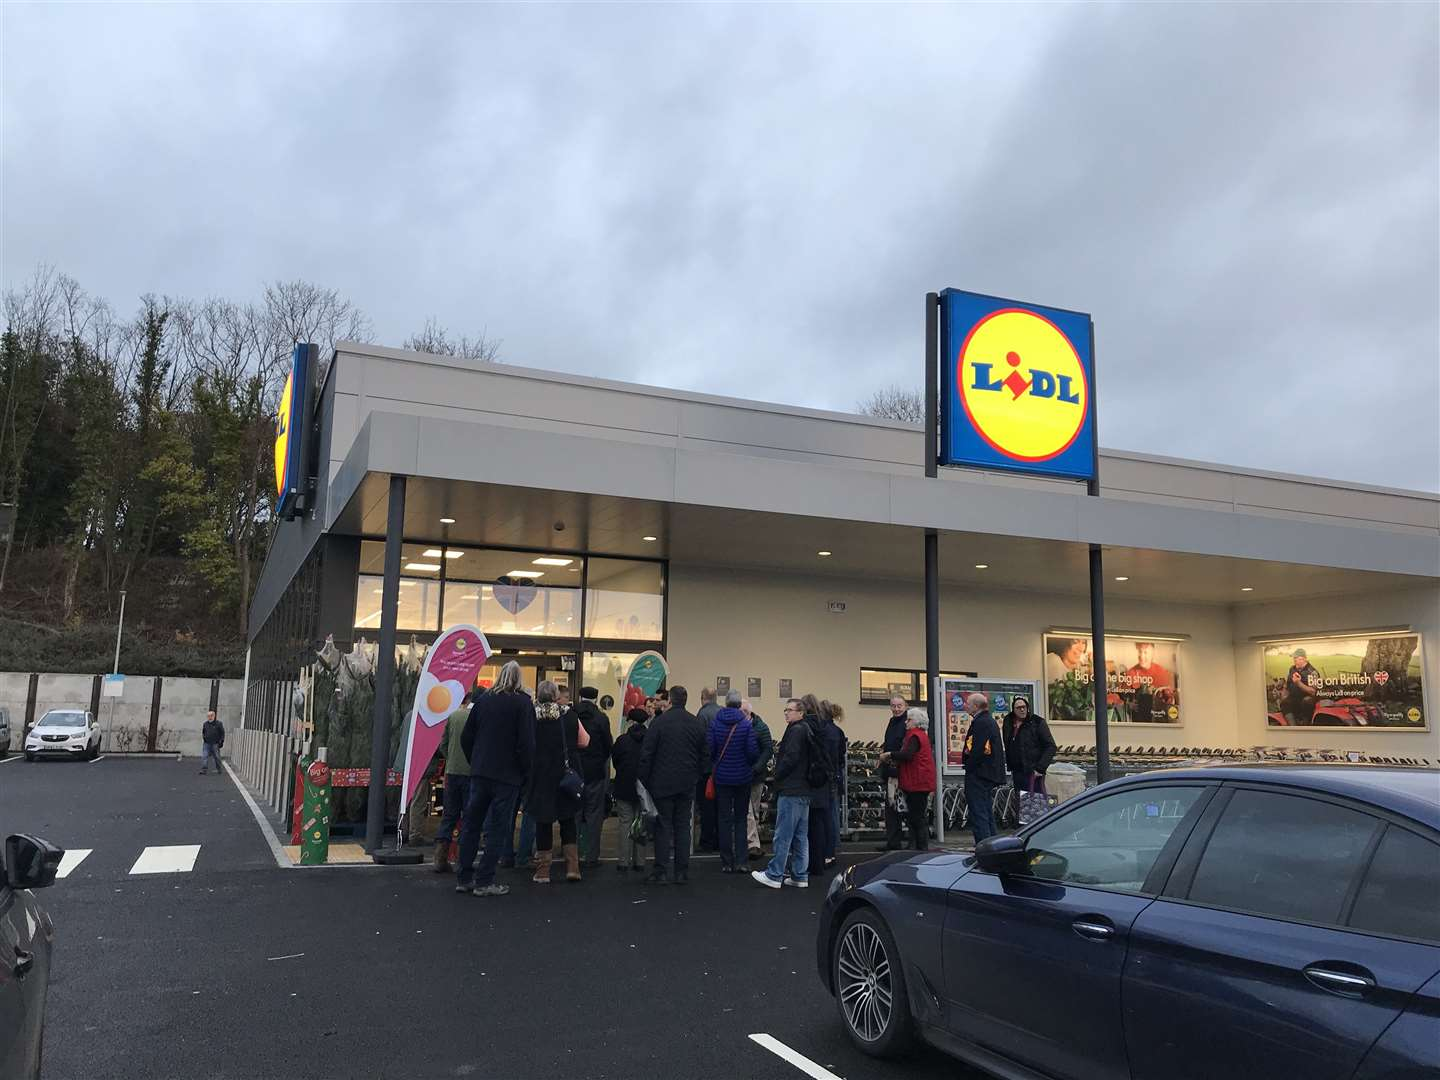 Customers queue outside the new Lidl (22755131)